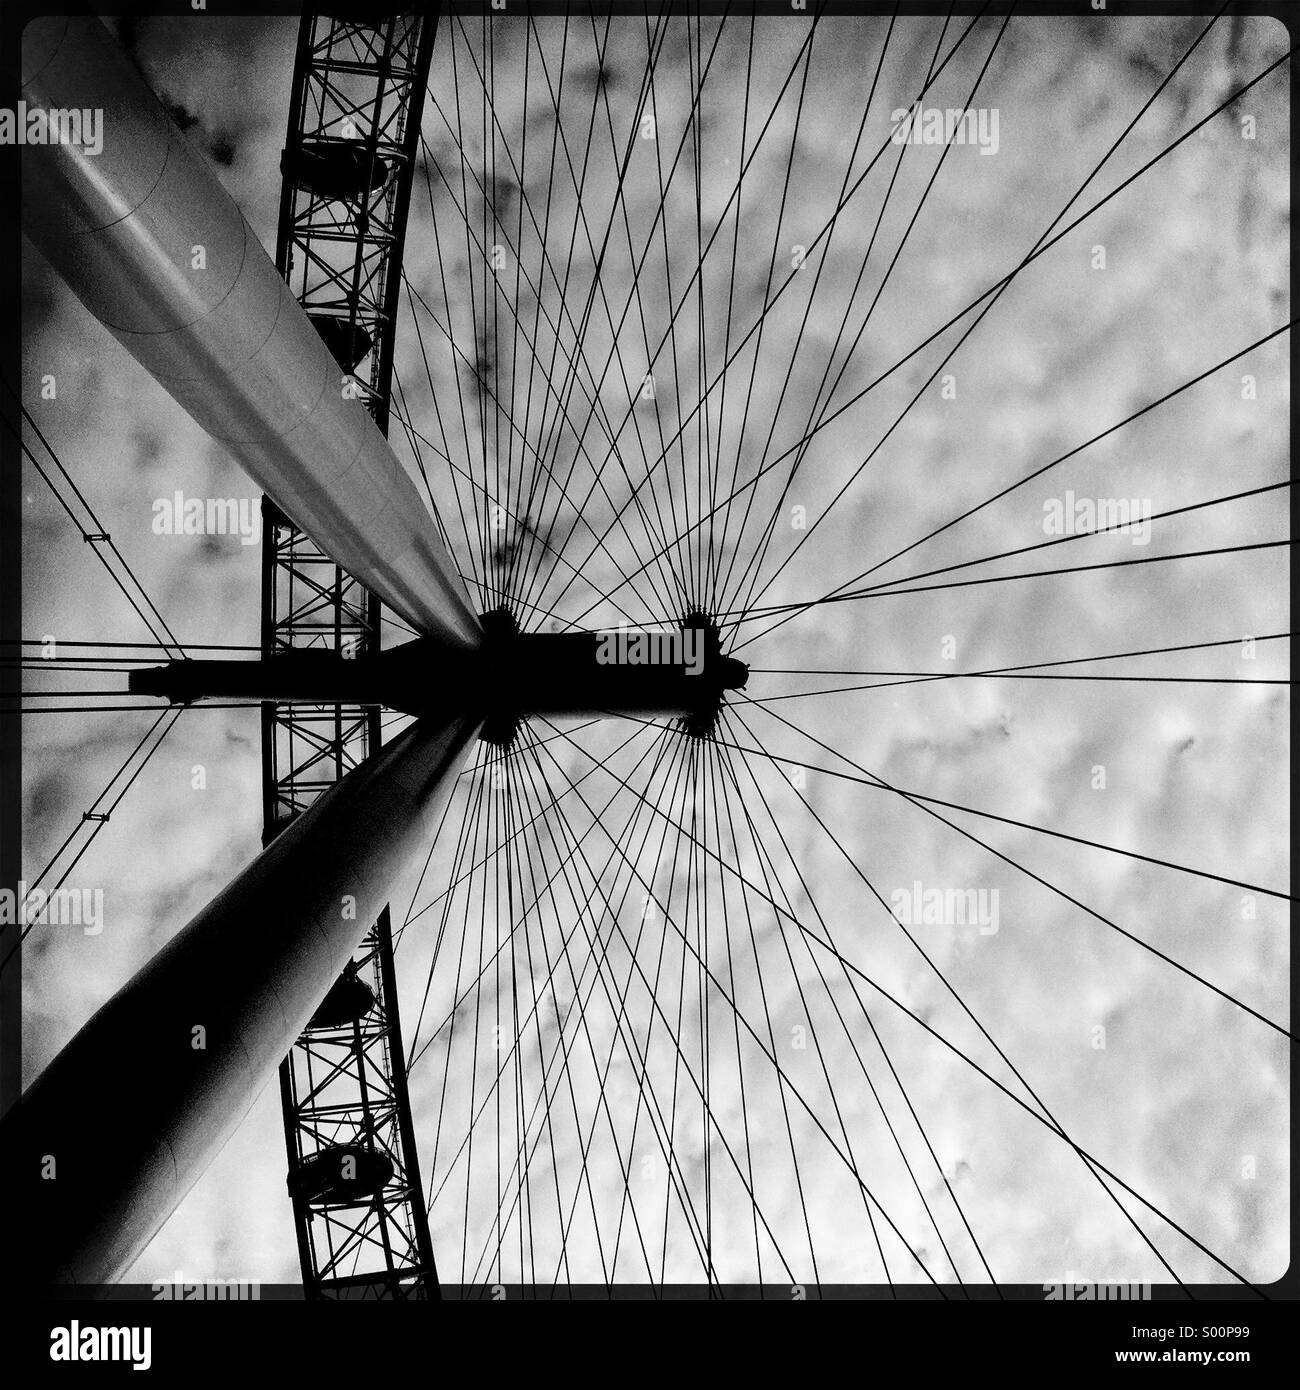 Abstract black and white photo of the London Eye against a mottled cloudy sky - Stock Image